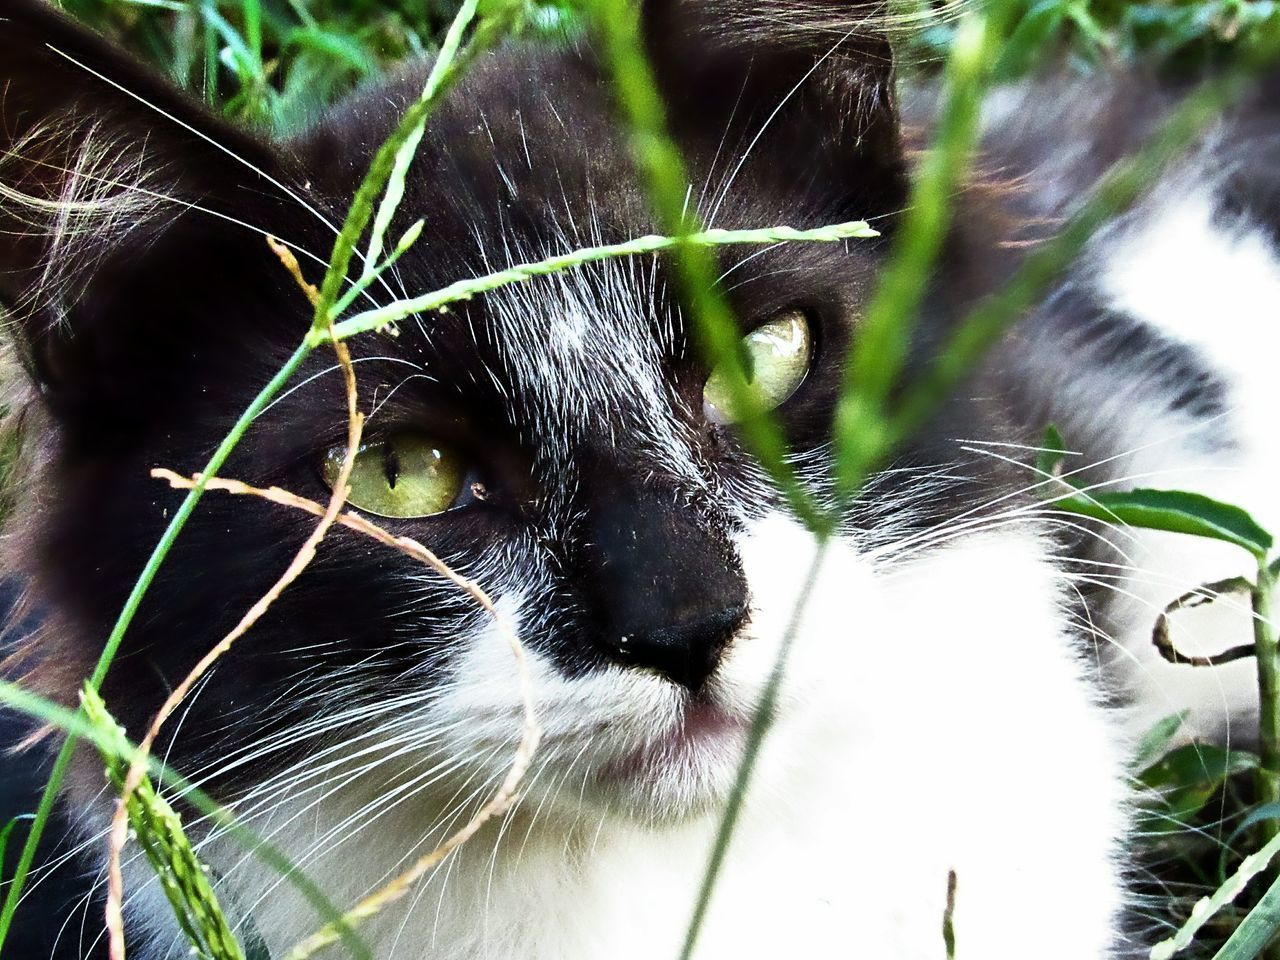 animal themes, mammal, animal, cat, pets, feline, one animal, domestic animals, domestic, domestic cat, vertebrate, animal body part, whisker, no people, close-up, day, looking at camera, portrait, focus on foreground, plant, animal head, animal eye, yellow eyes, snout